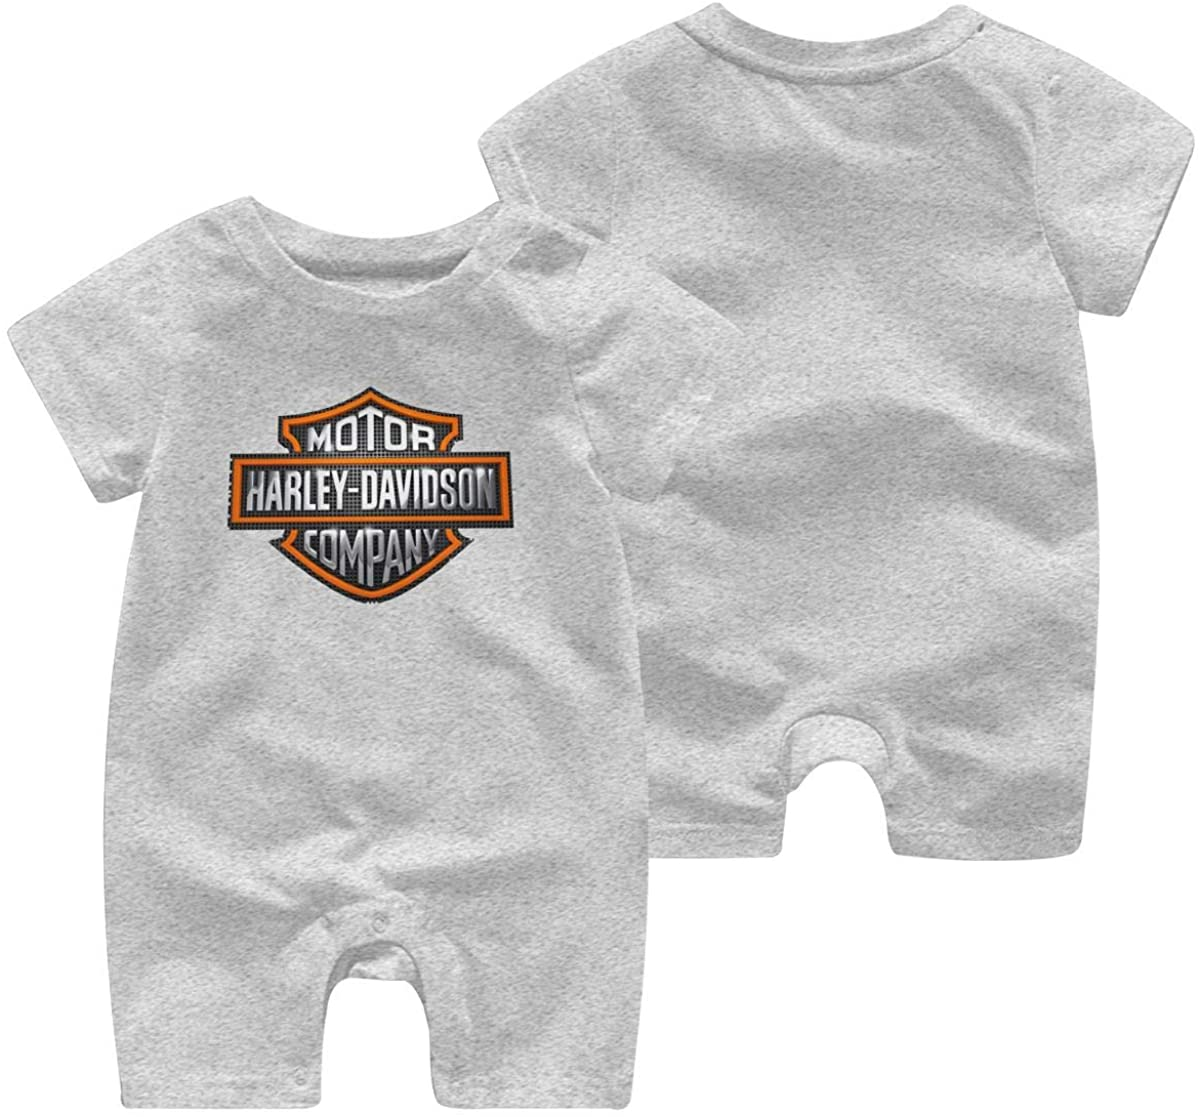 Harley Davidson One Piece Outfits Baby Solid Color Rompers with Button Kids Short Sleeve Playsuit Jumpsuits Cotton Clothing 2t Gray